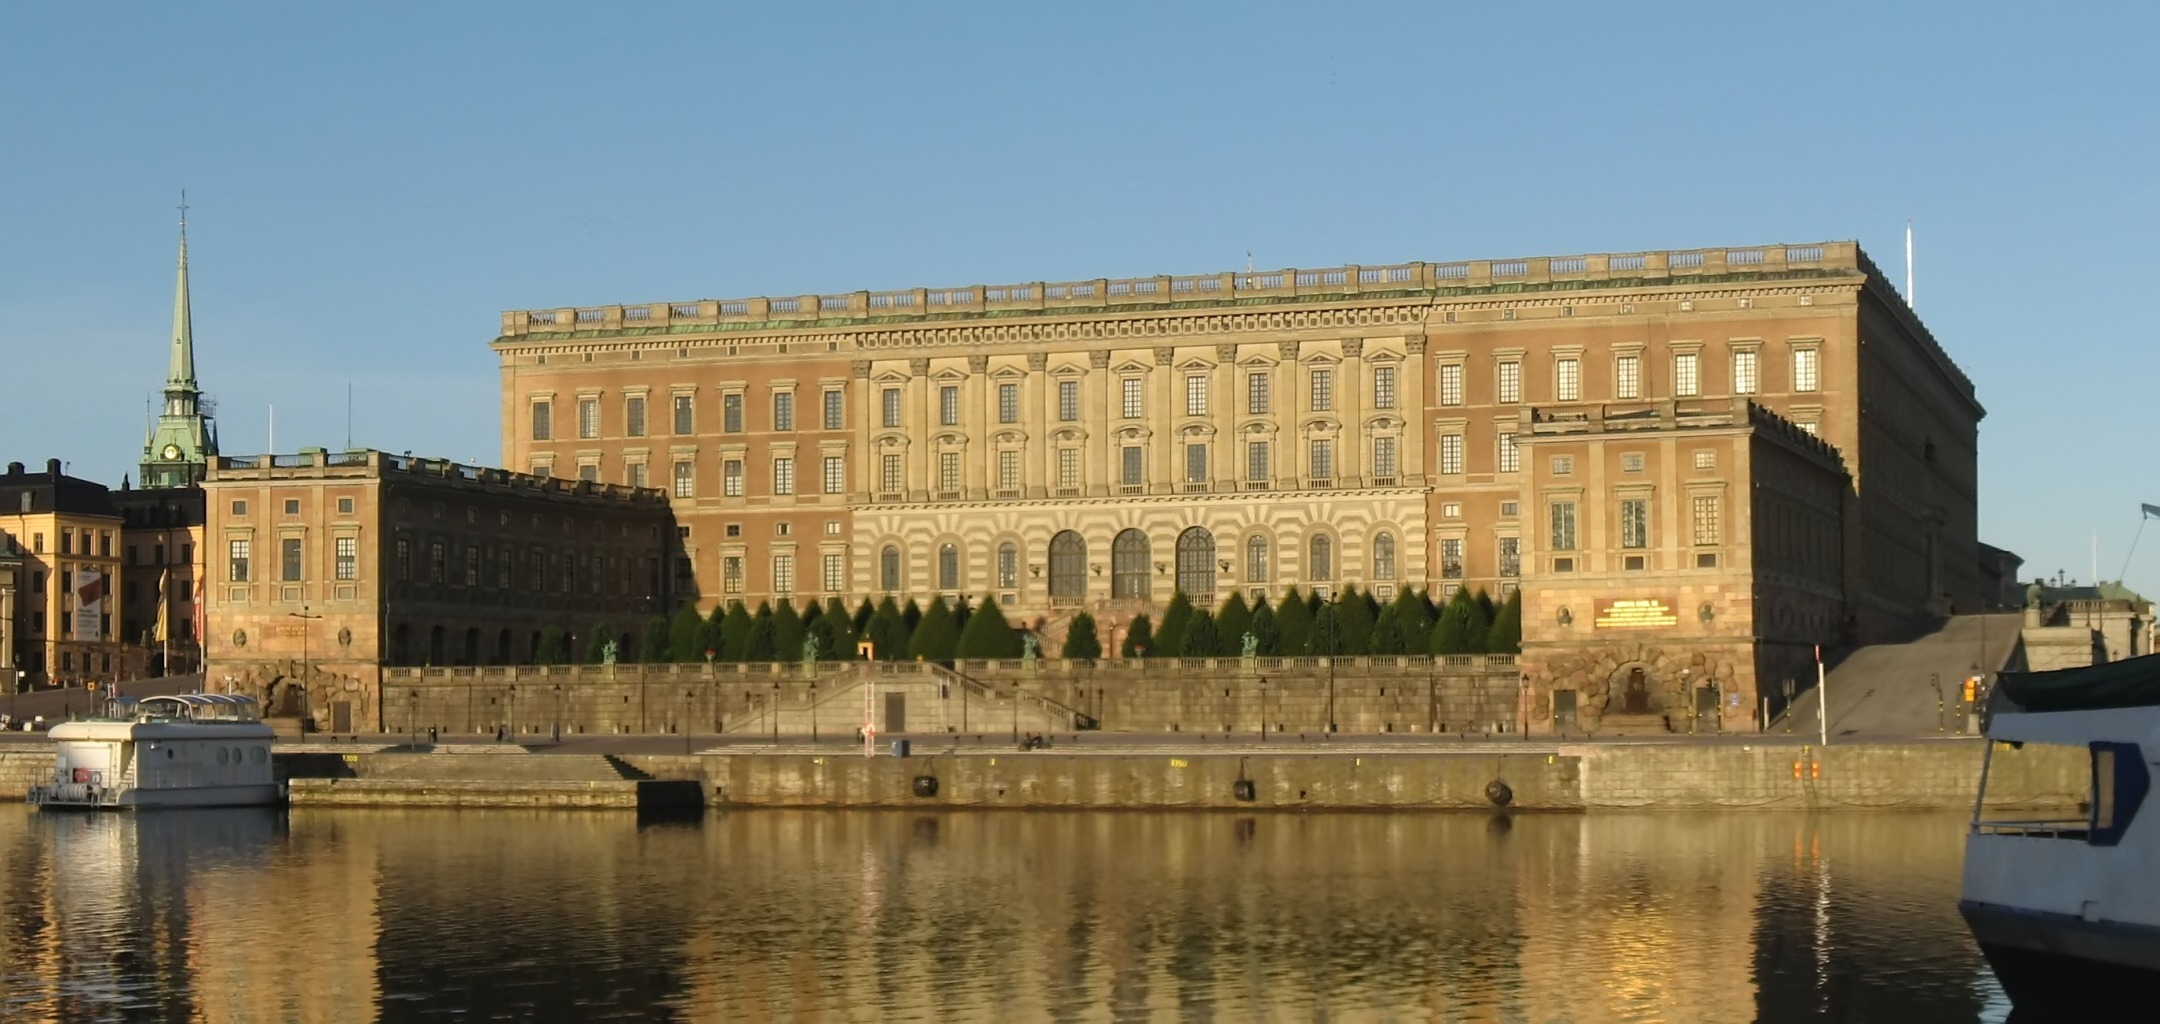 Swedish_palace_2008-07-18_1_denoised